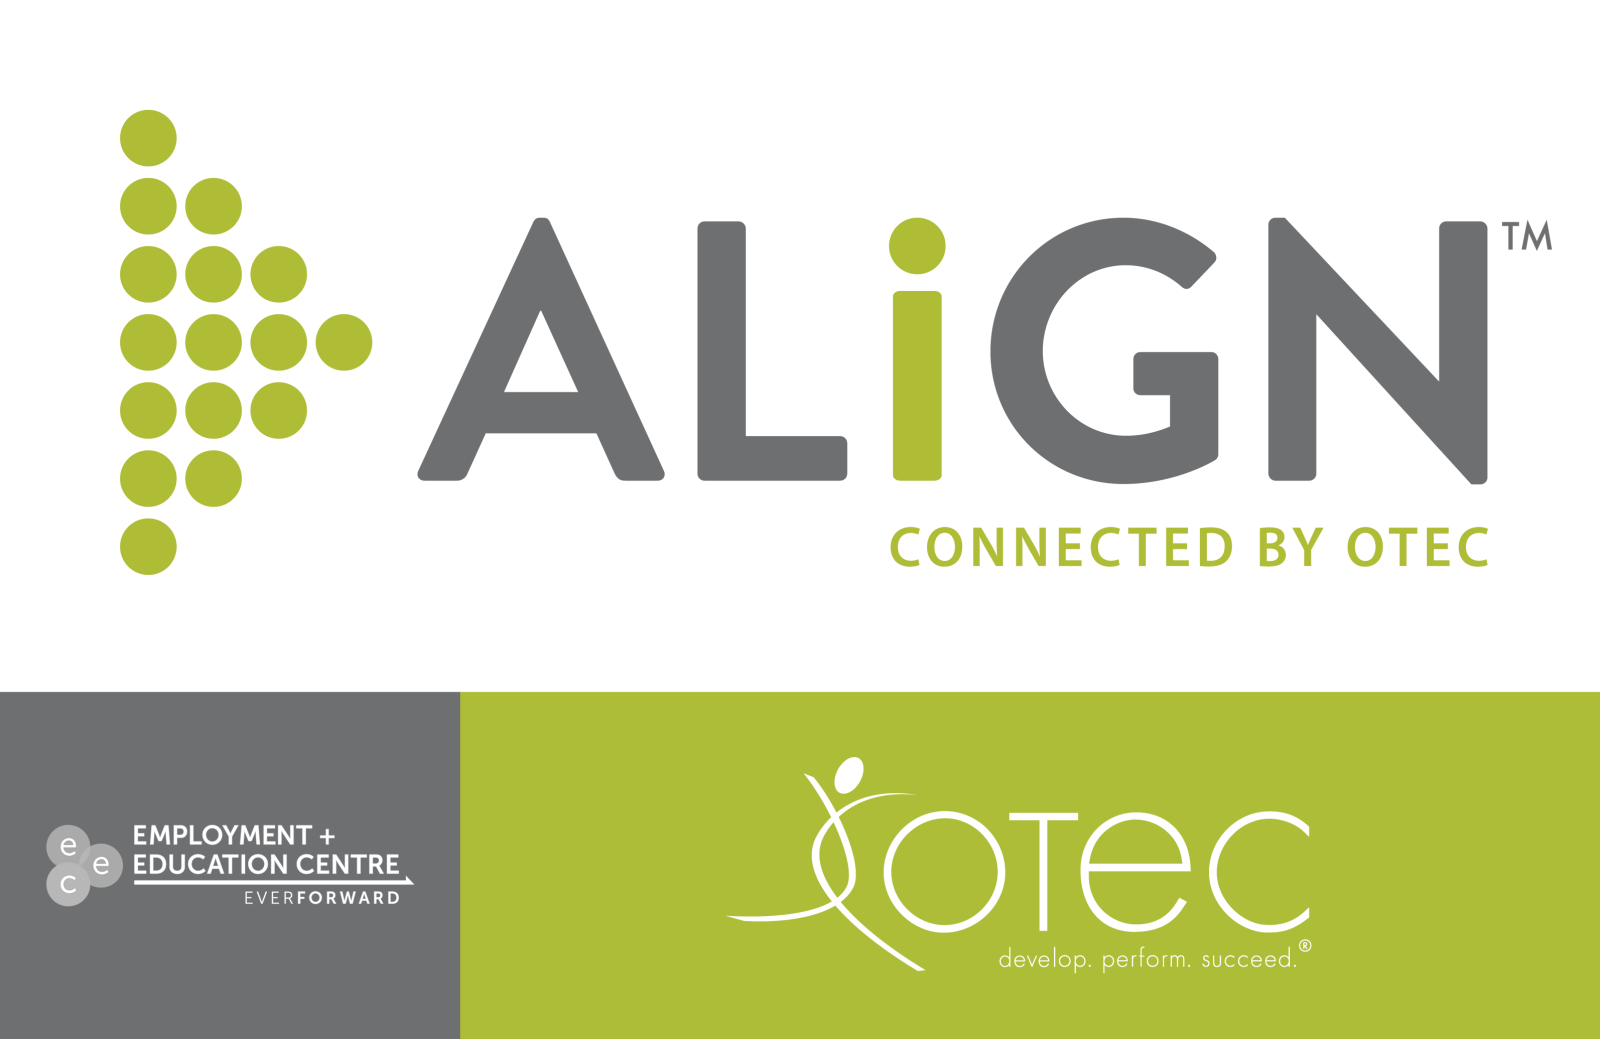 ALiGN Network - OTEC and Employment + Education Centre